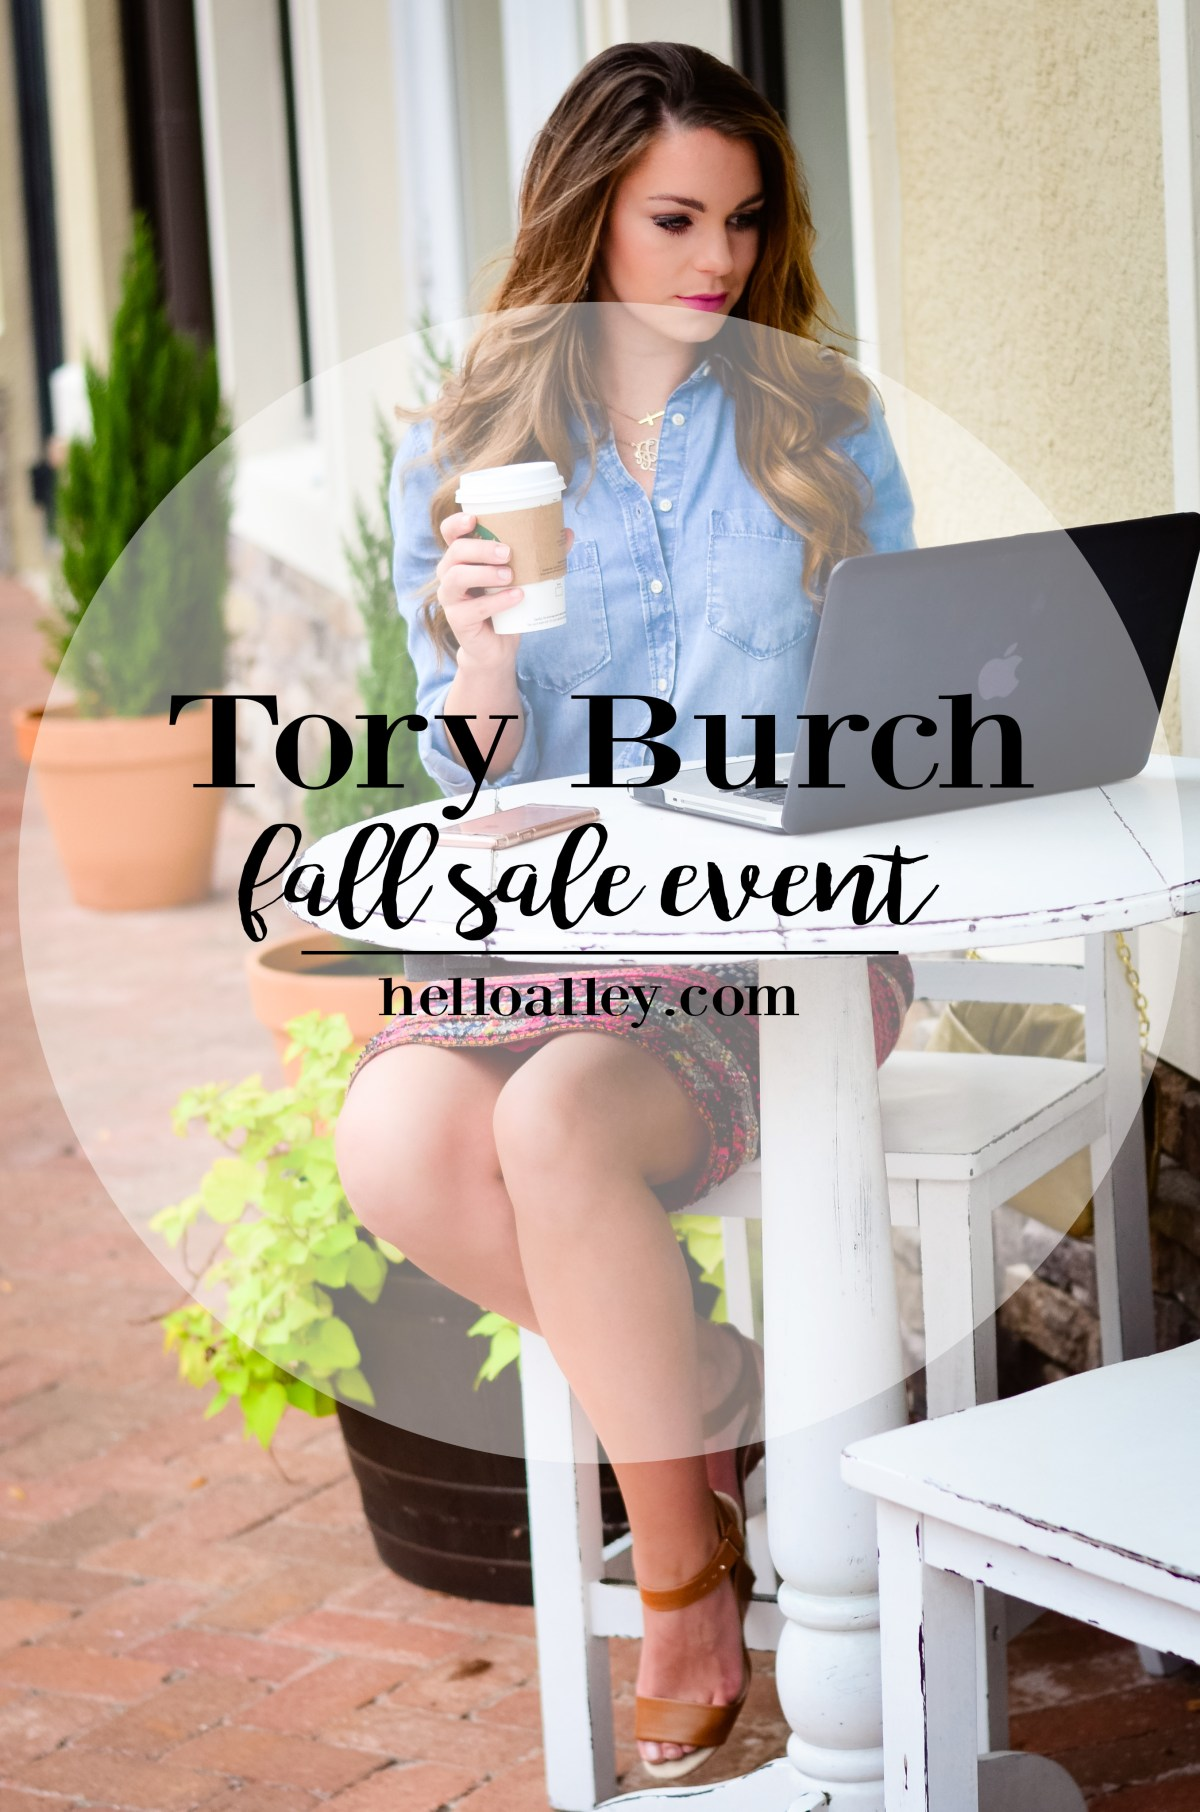 tory-burch-fall-sale-event